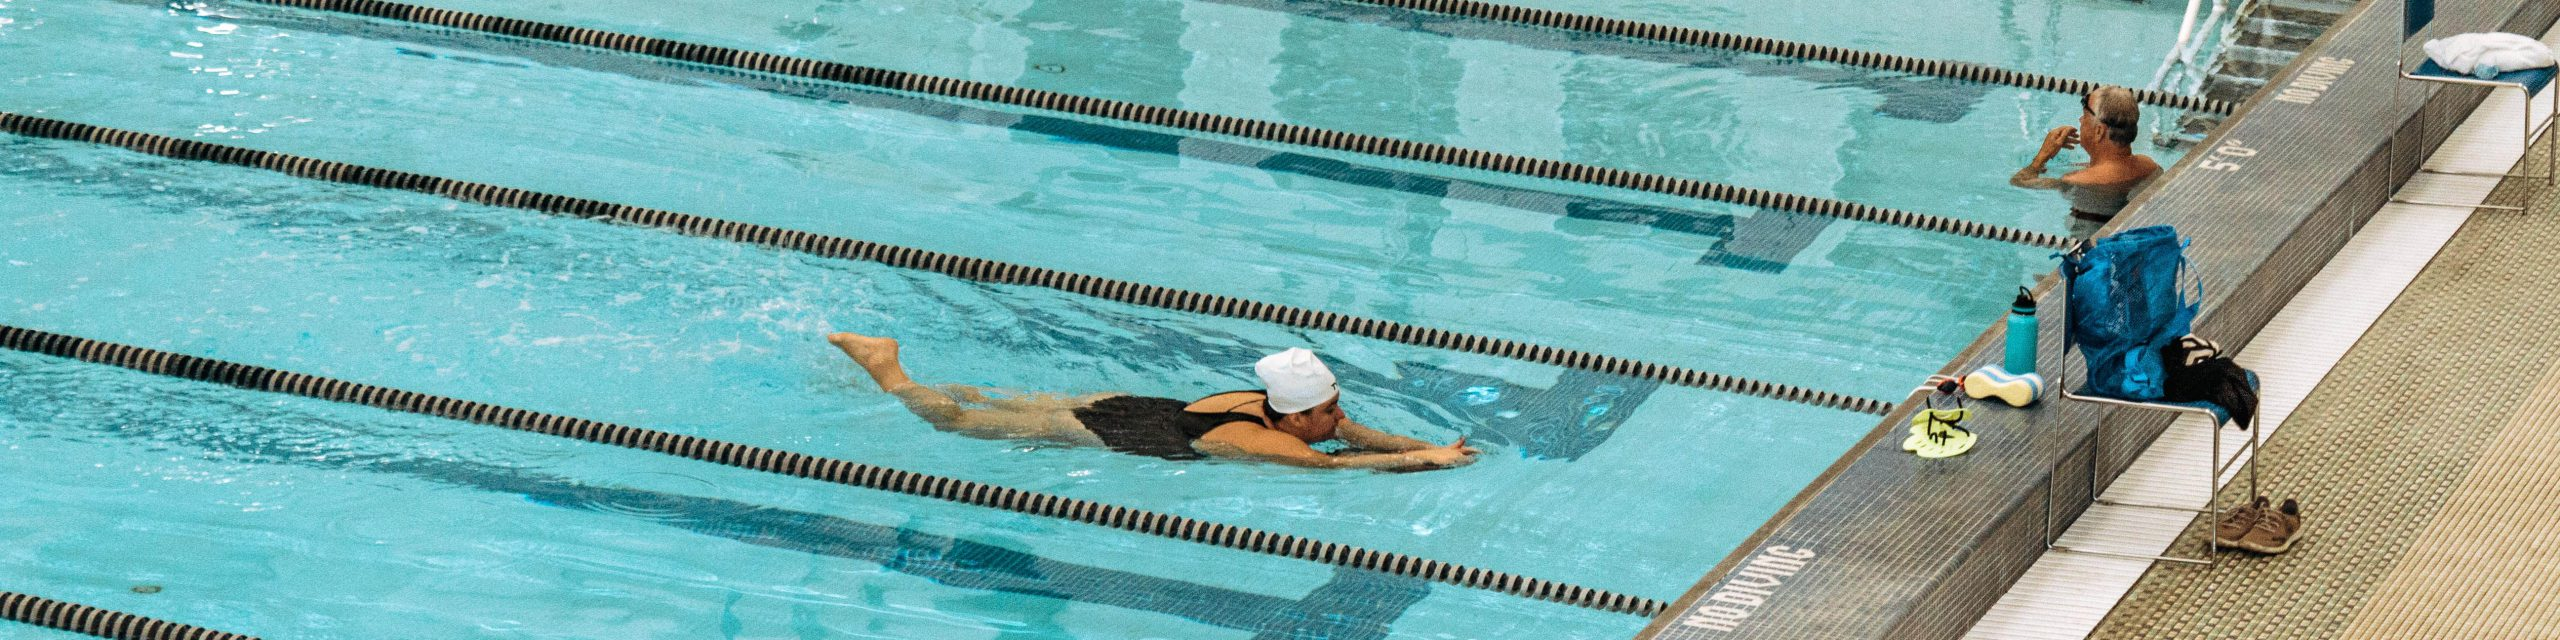 A women using a kick board in the Leach Pool.